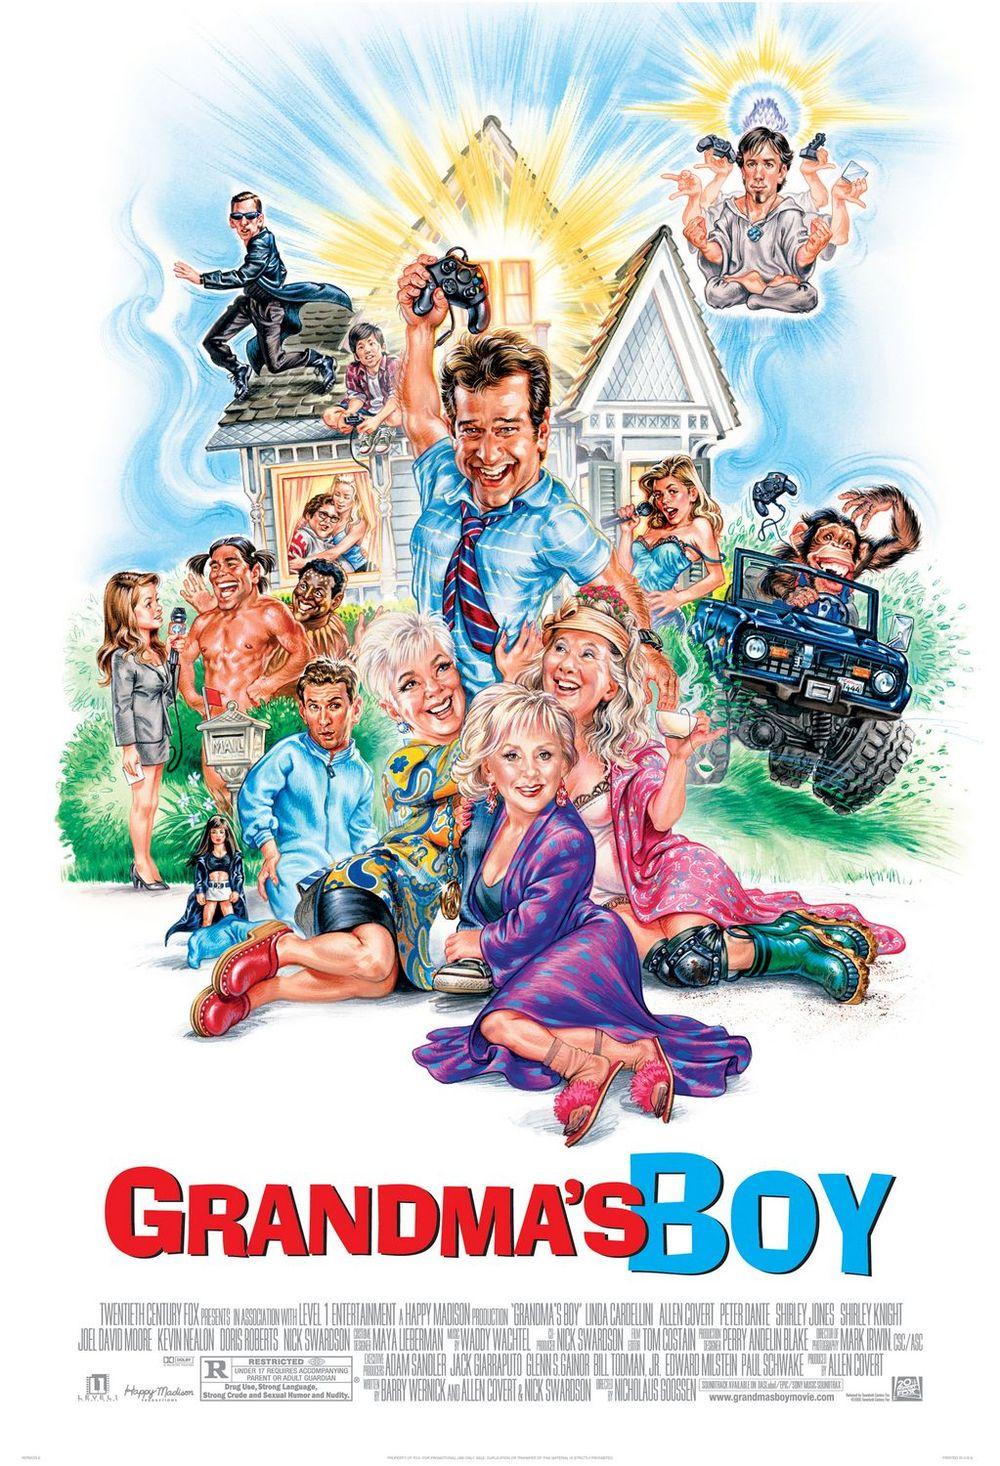 Grandma's Boy - 20th Century Fox